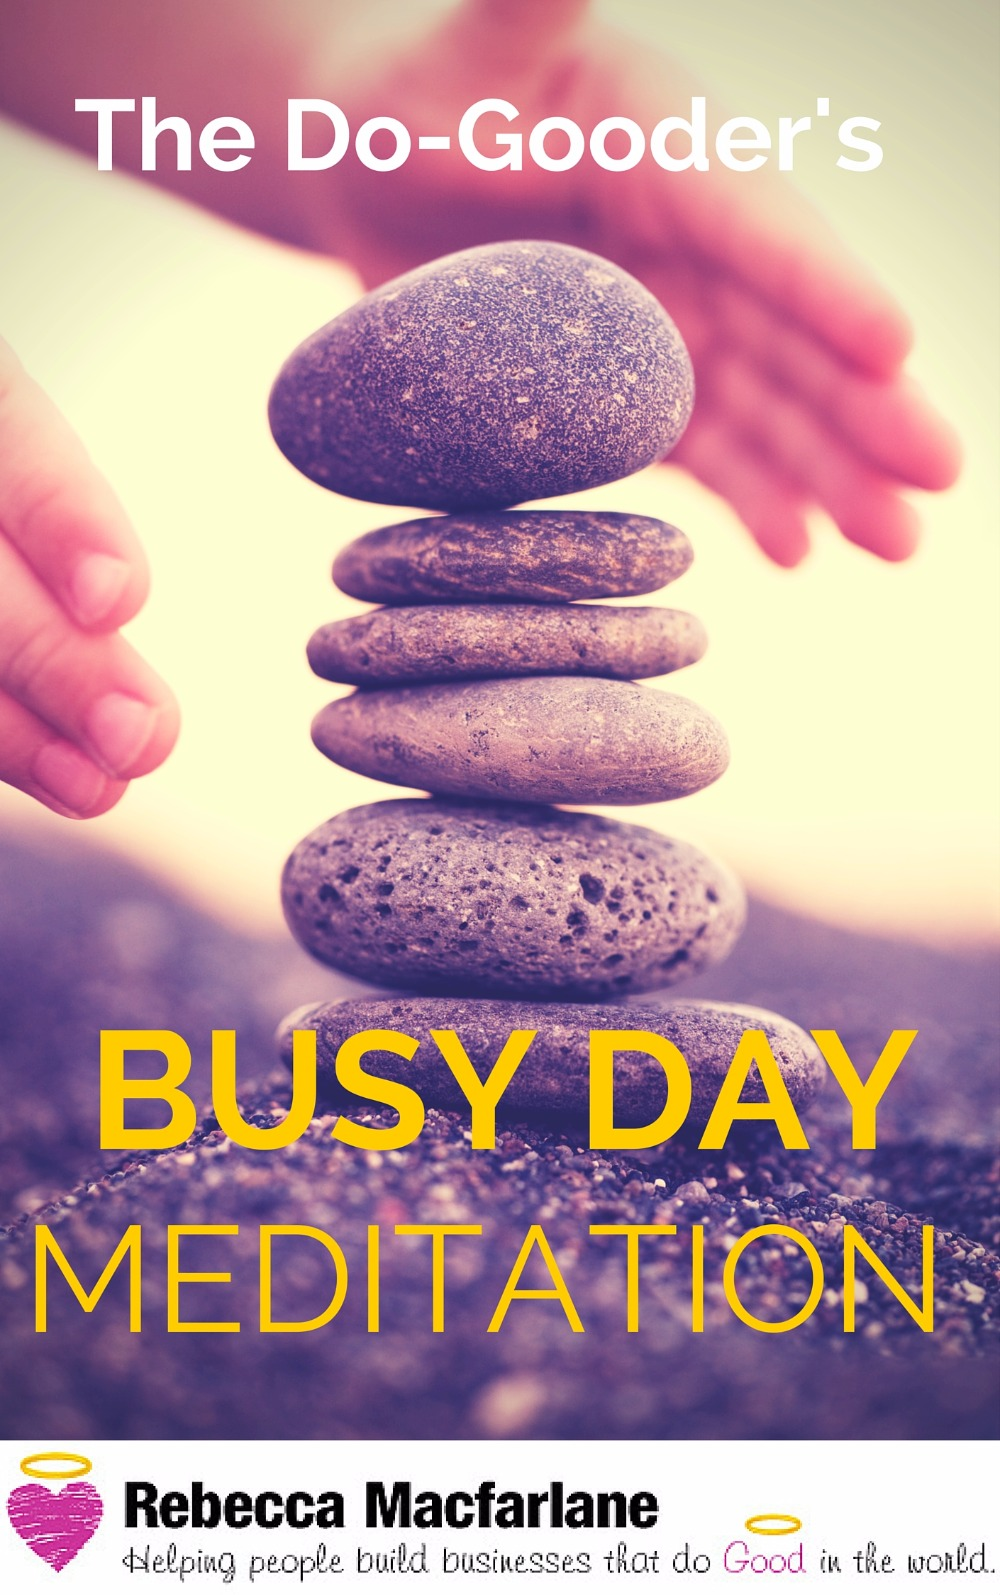 Busy Day Meditation for Do-Gooders